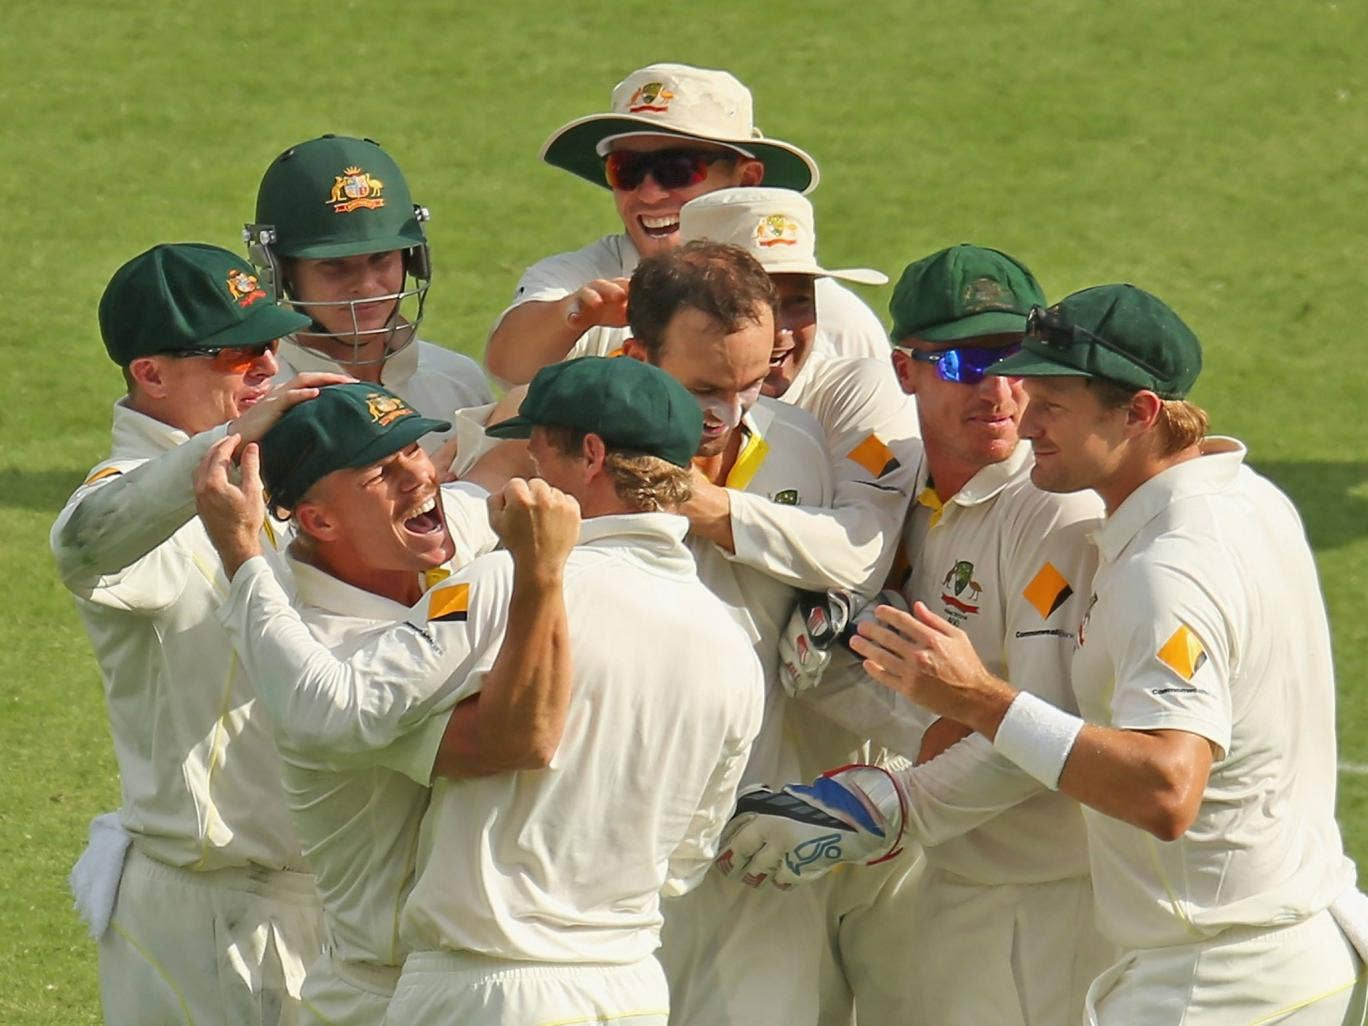 The Australian players celebrate another wicket on their way to victory over England